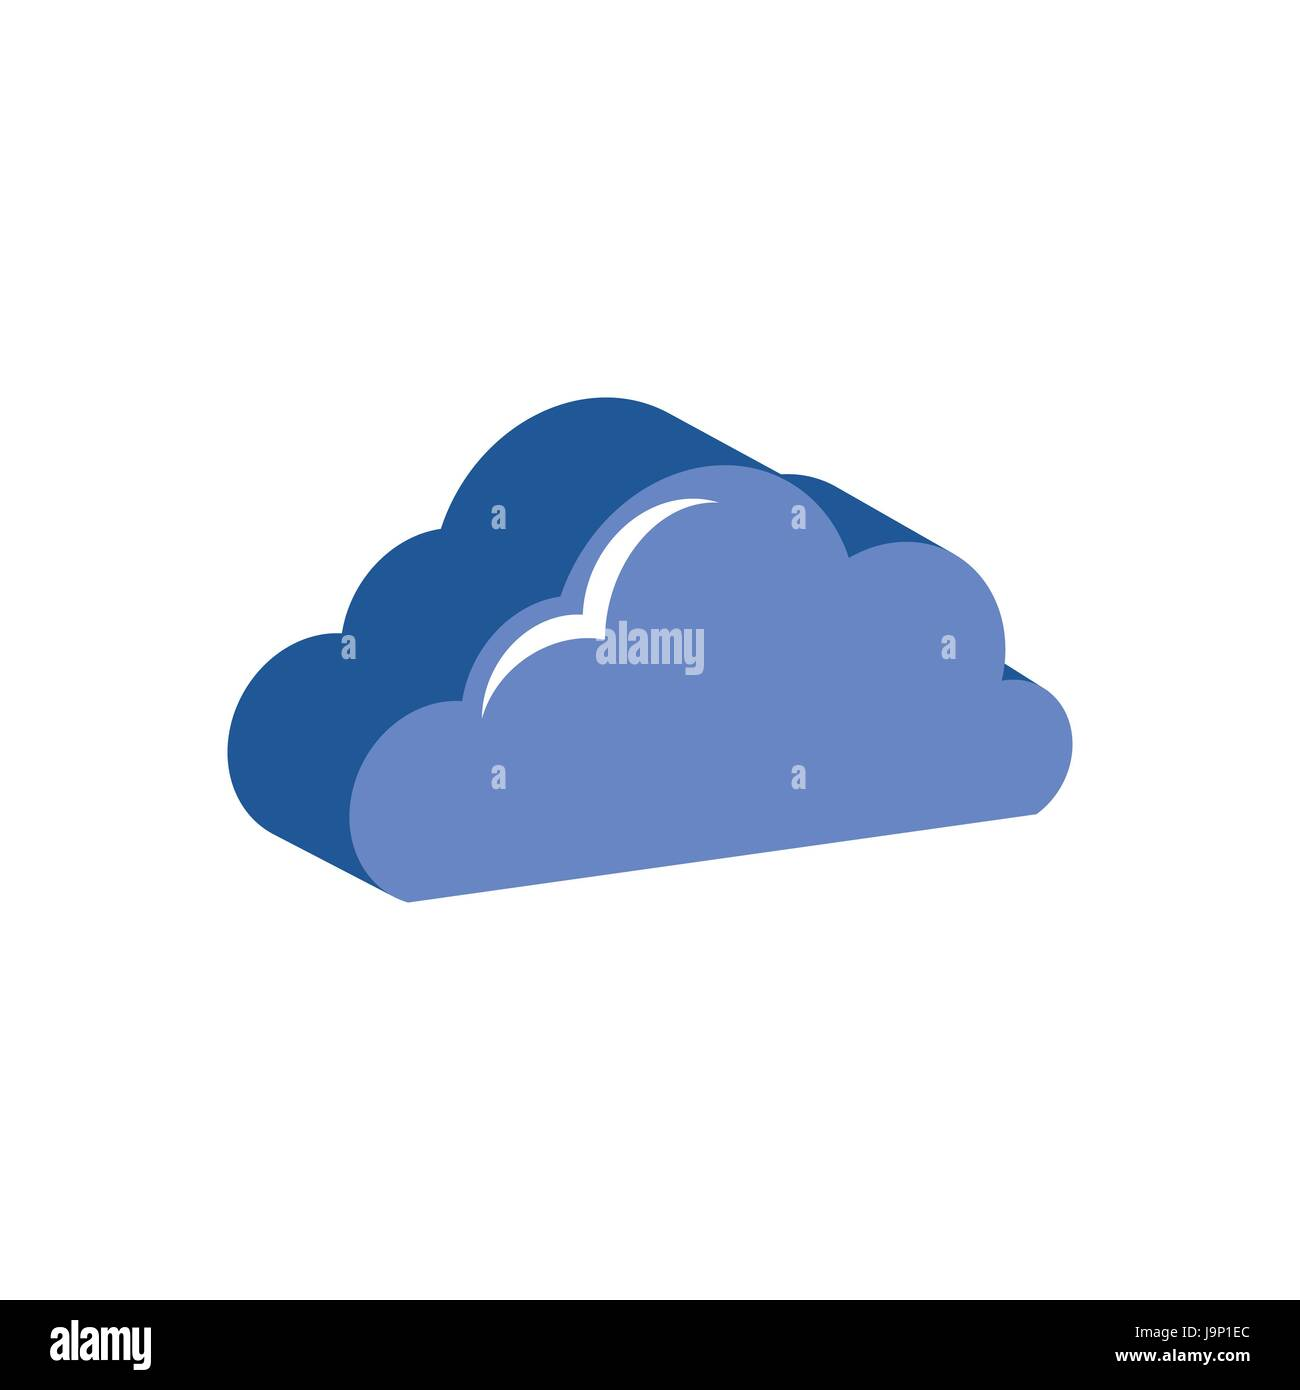 Cloud Symbol Flat Isometric Icon Or Logo 3d Style Pictogram For